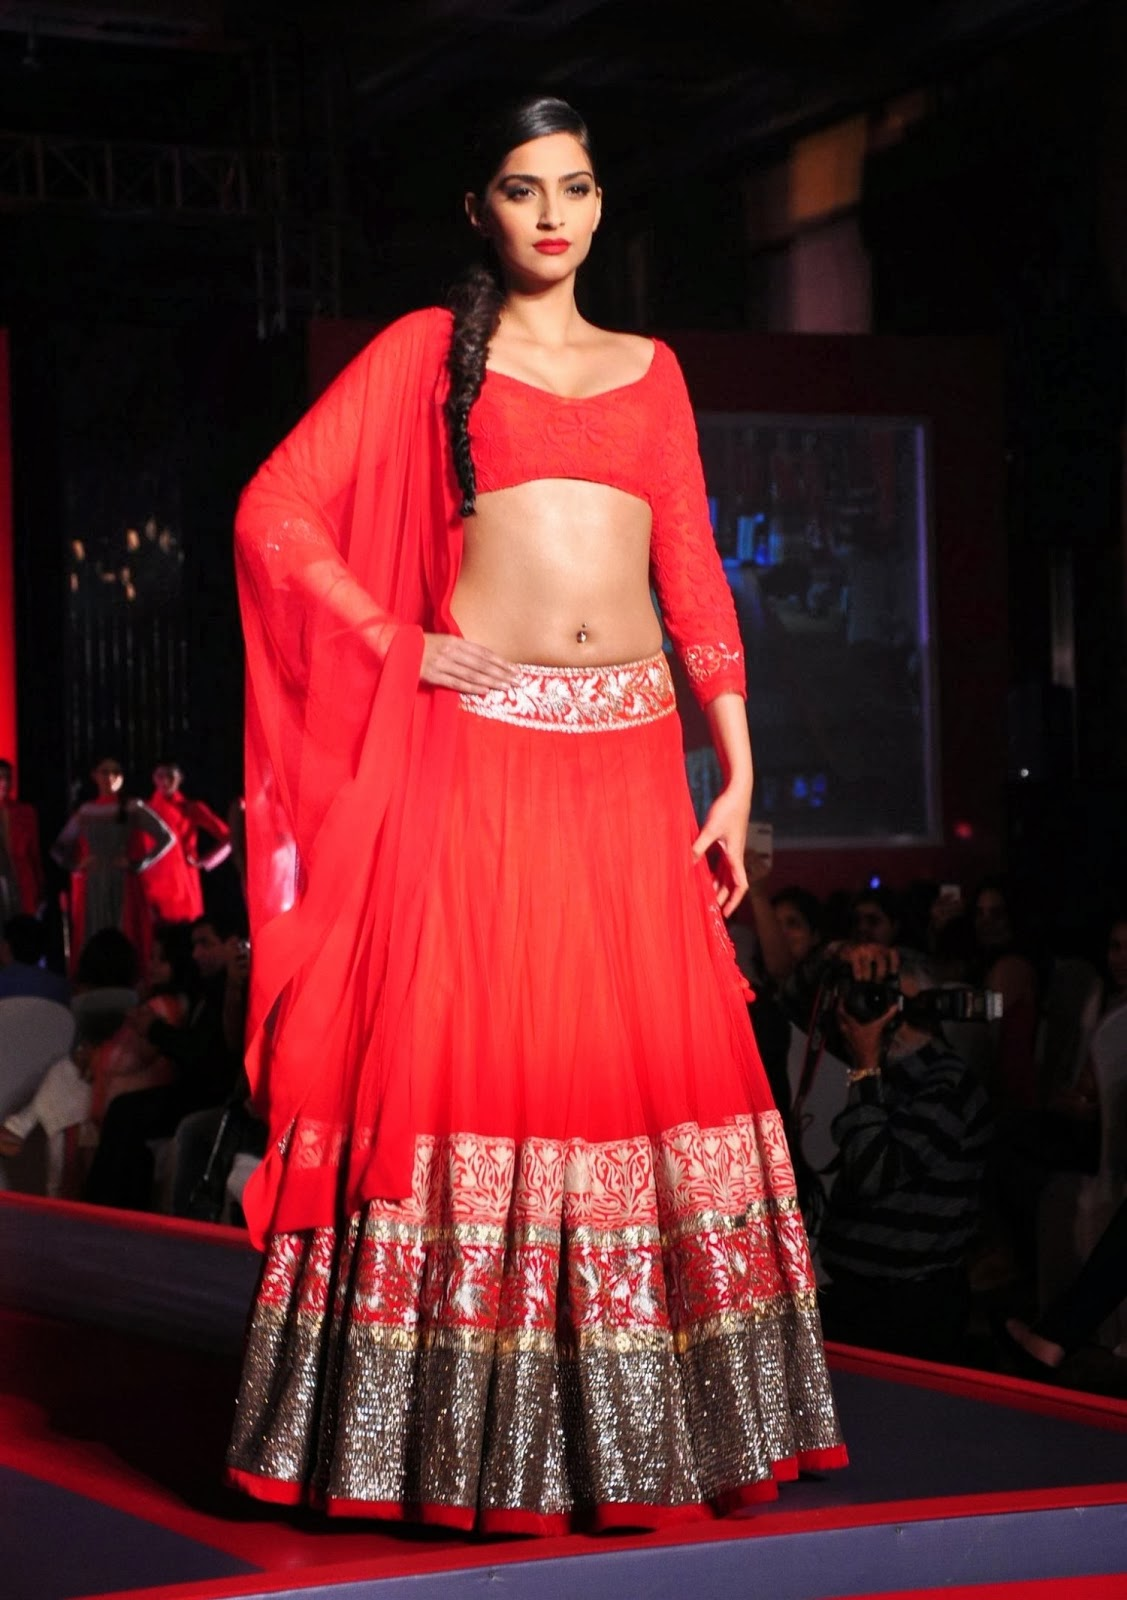 Gorgeous Bollywood Actress Sonam Kapoor Hip Navel Show Photos In Red Dress